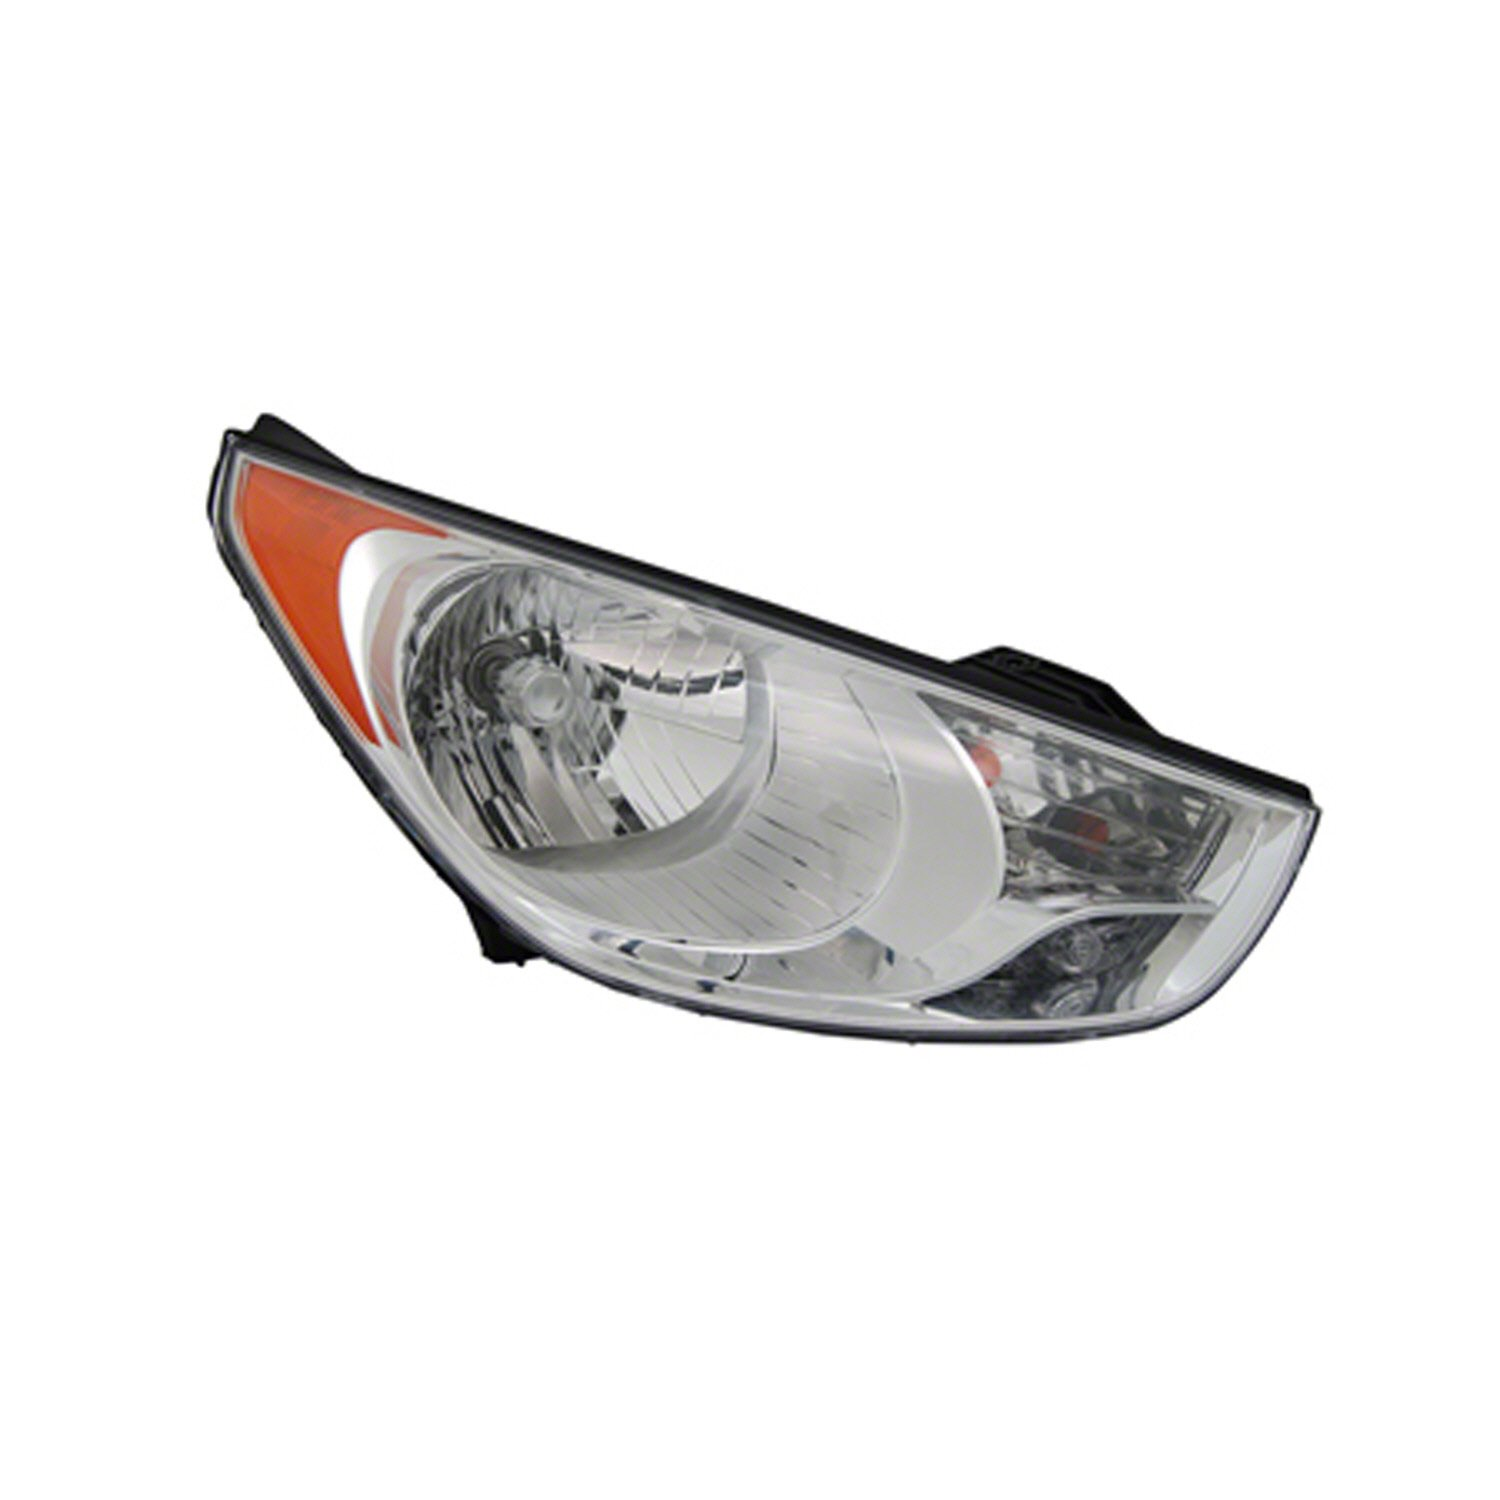 HYUNDAI TUCSON PartsChannel HY2503158OE OE Replacement Headlight Assembly